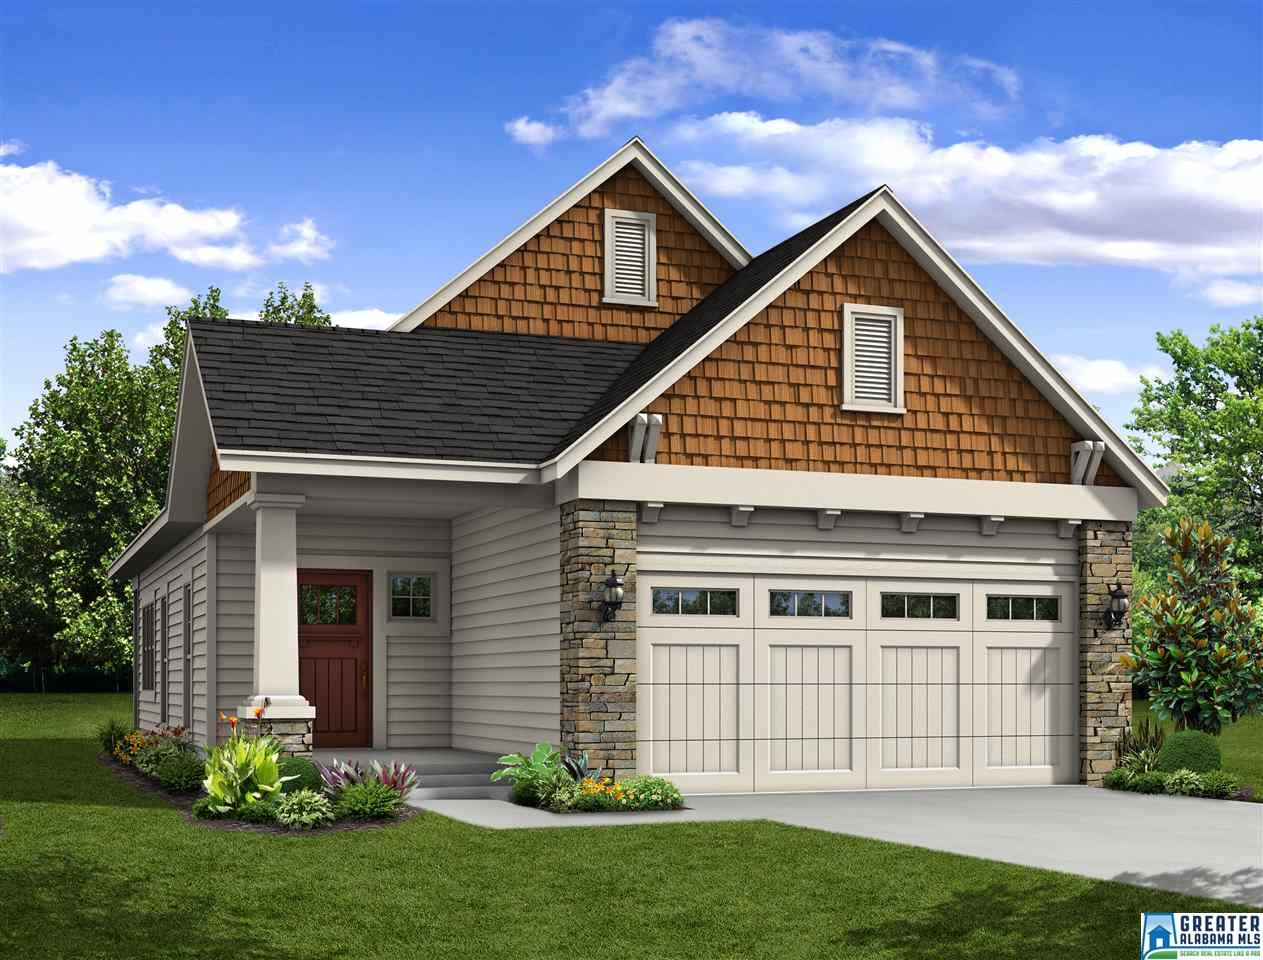 Grants Mill Valley - New Homes in Irondale 858847